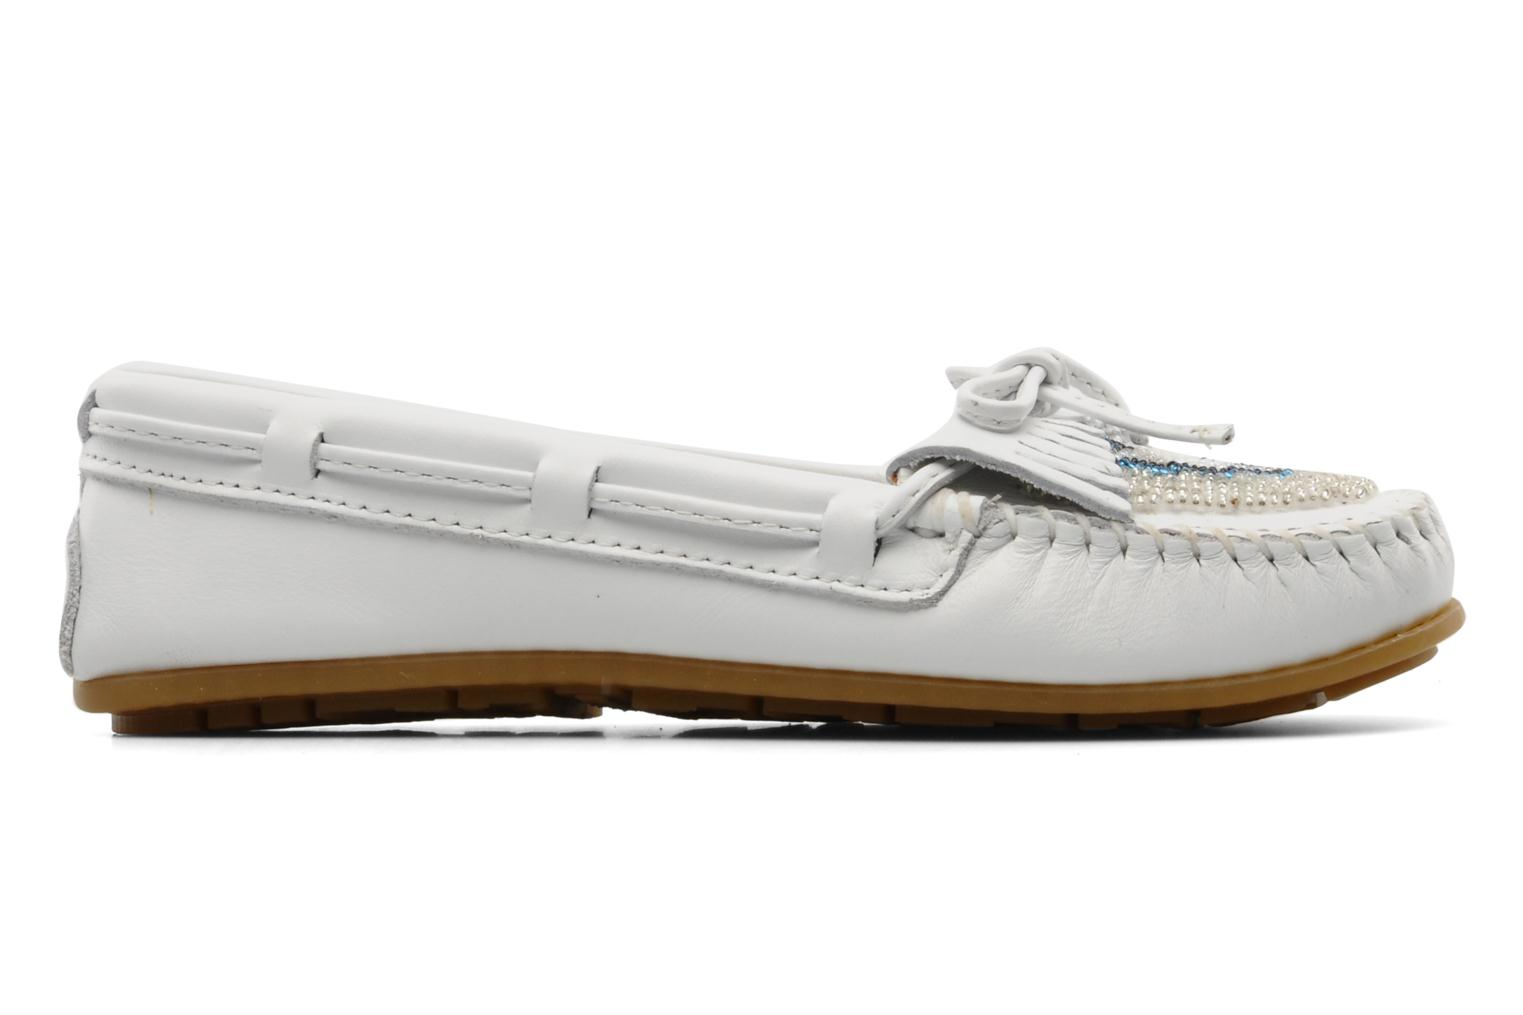 KILTY BEADED White leather